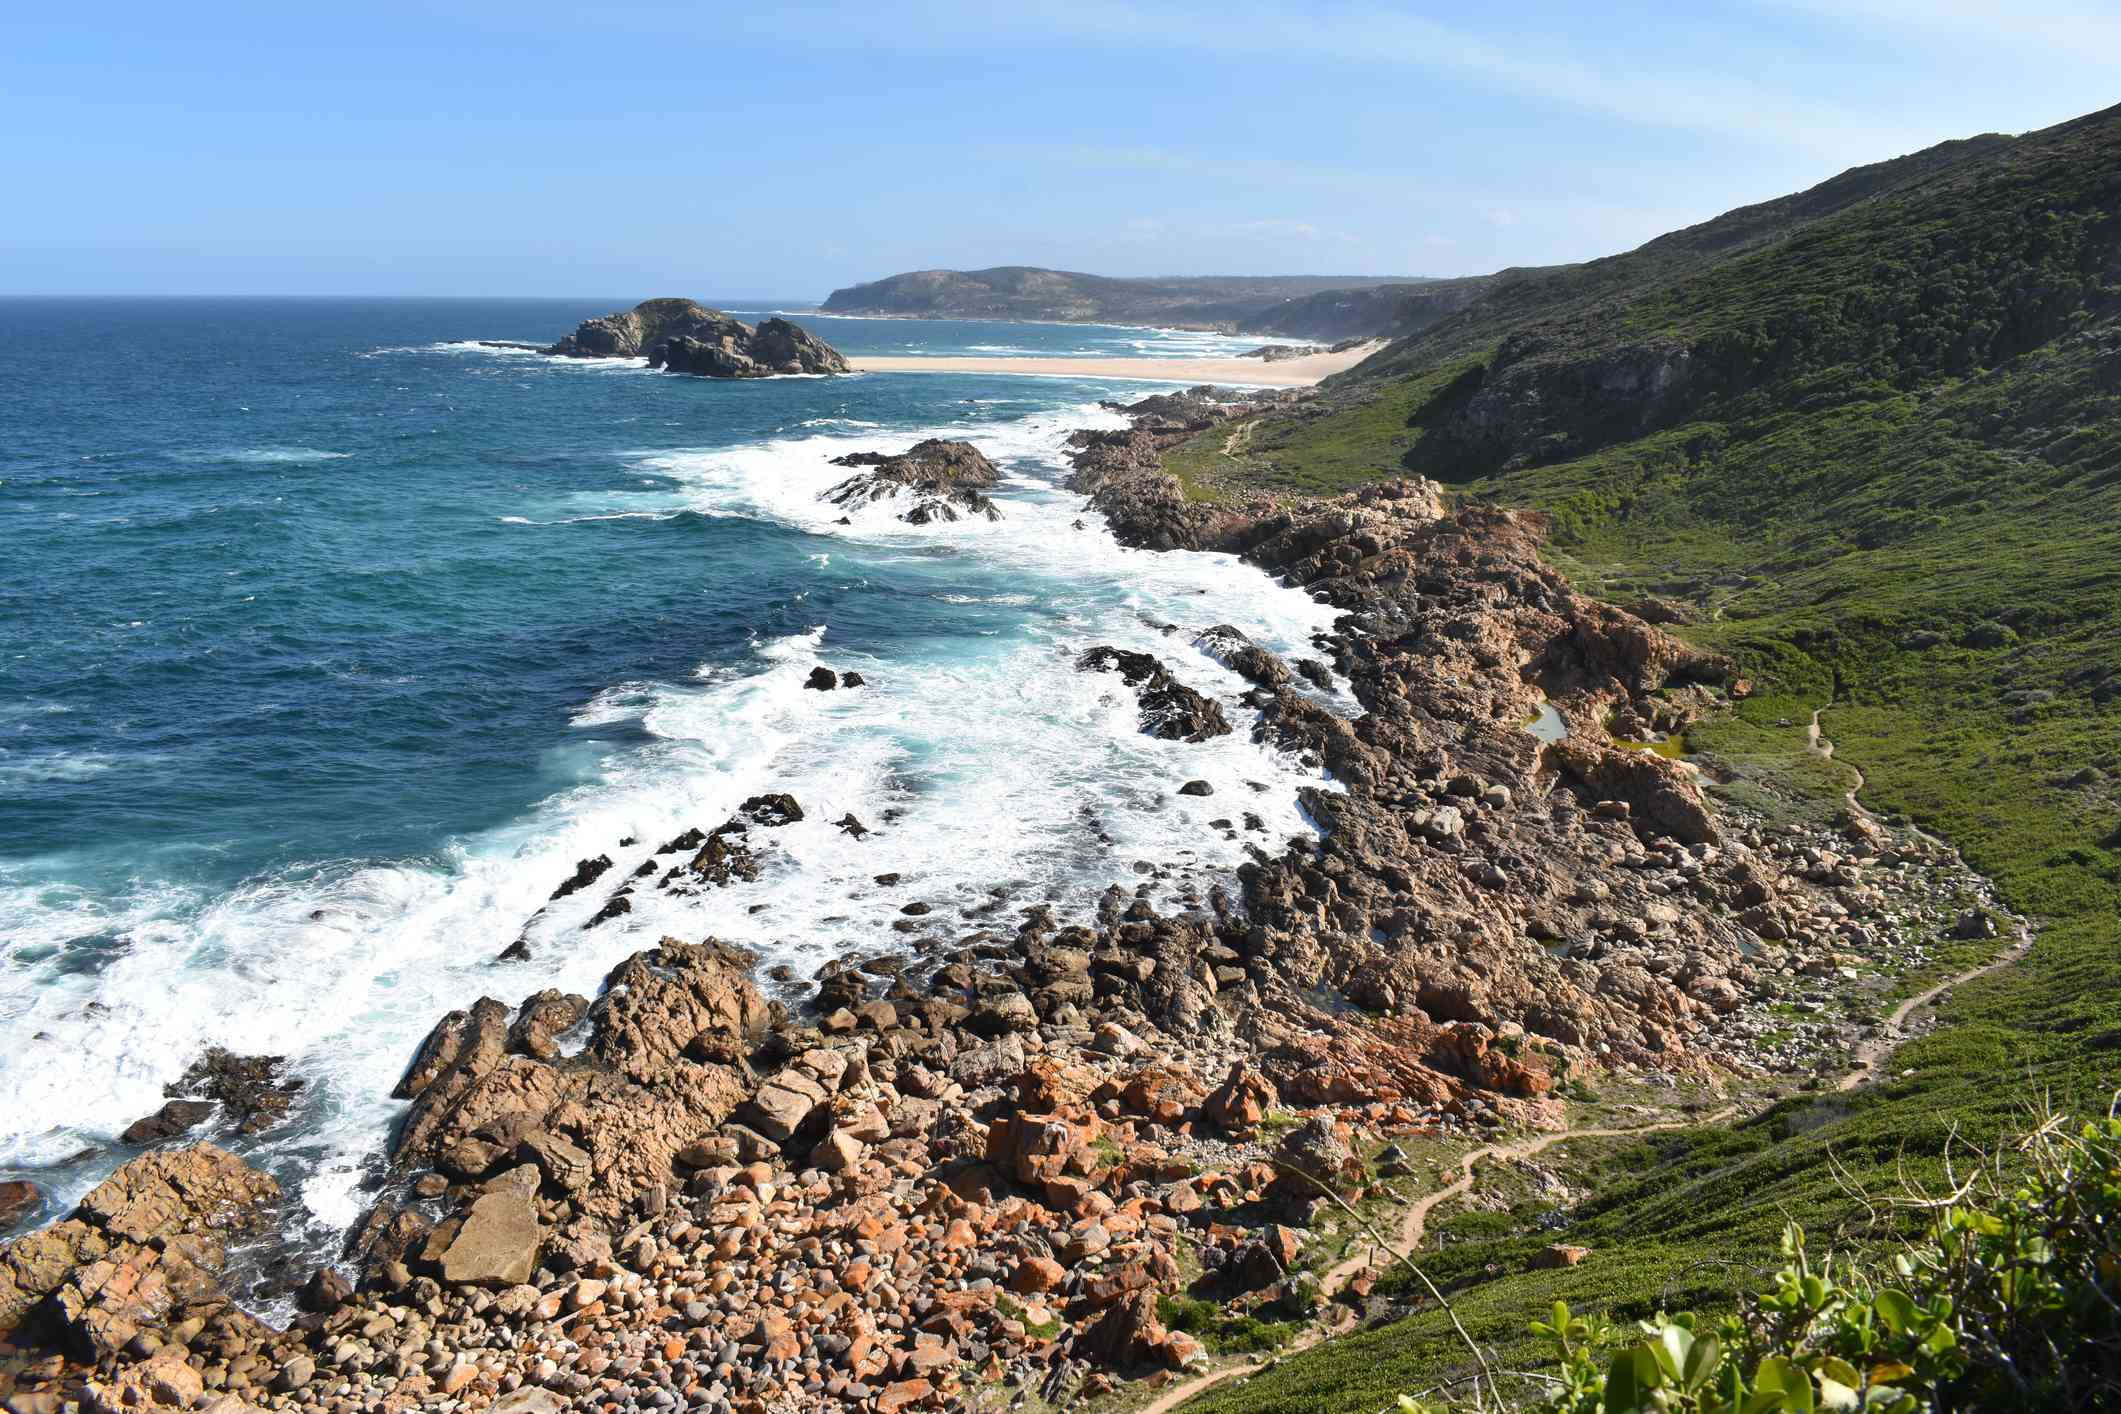 View of hiking trail in Robberg Nature Reserve, South Africa